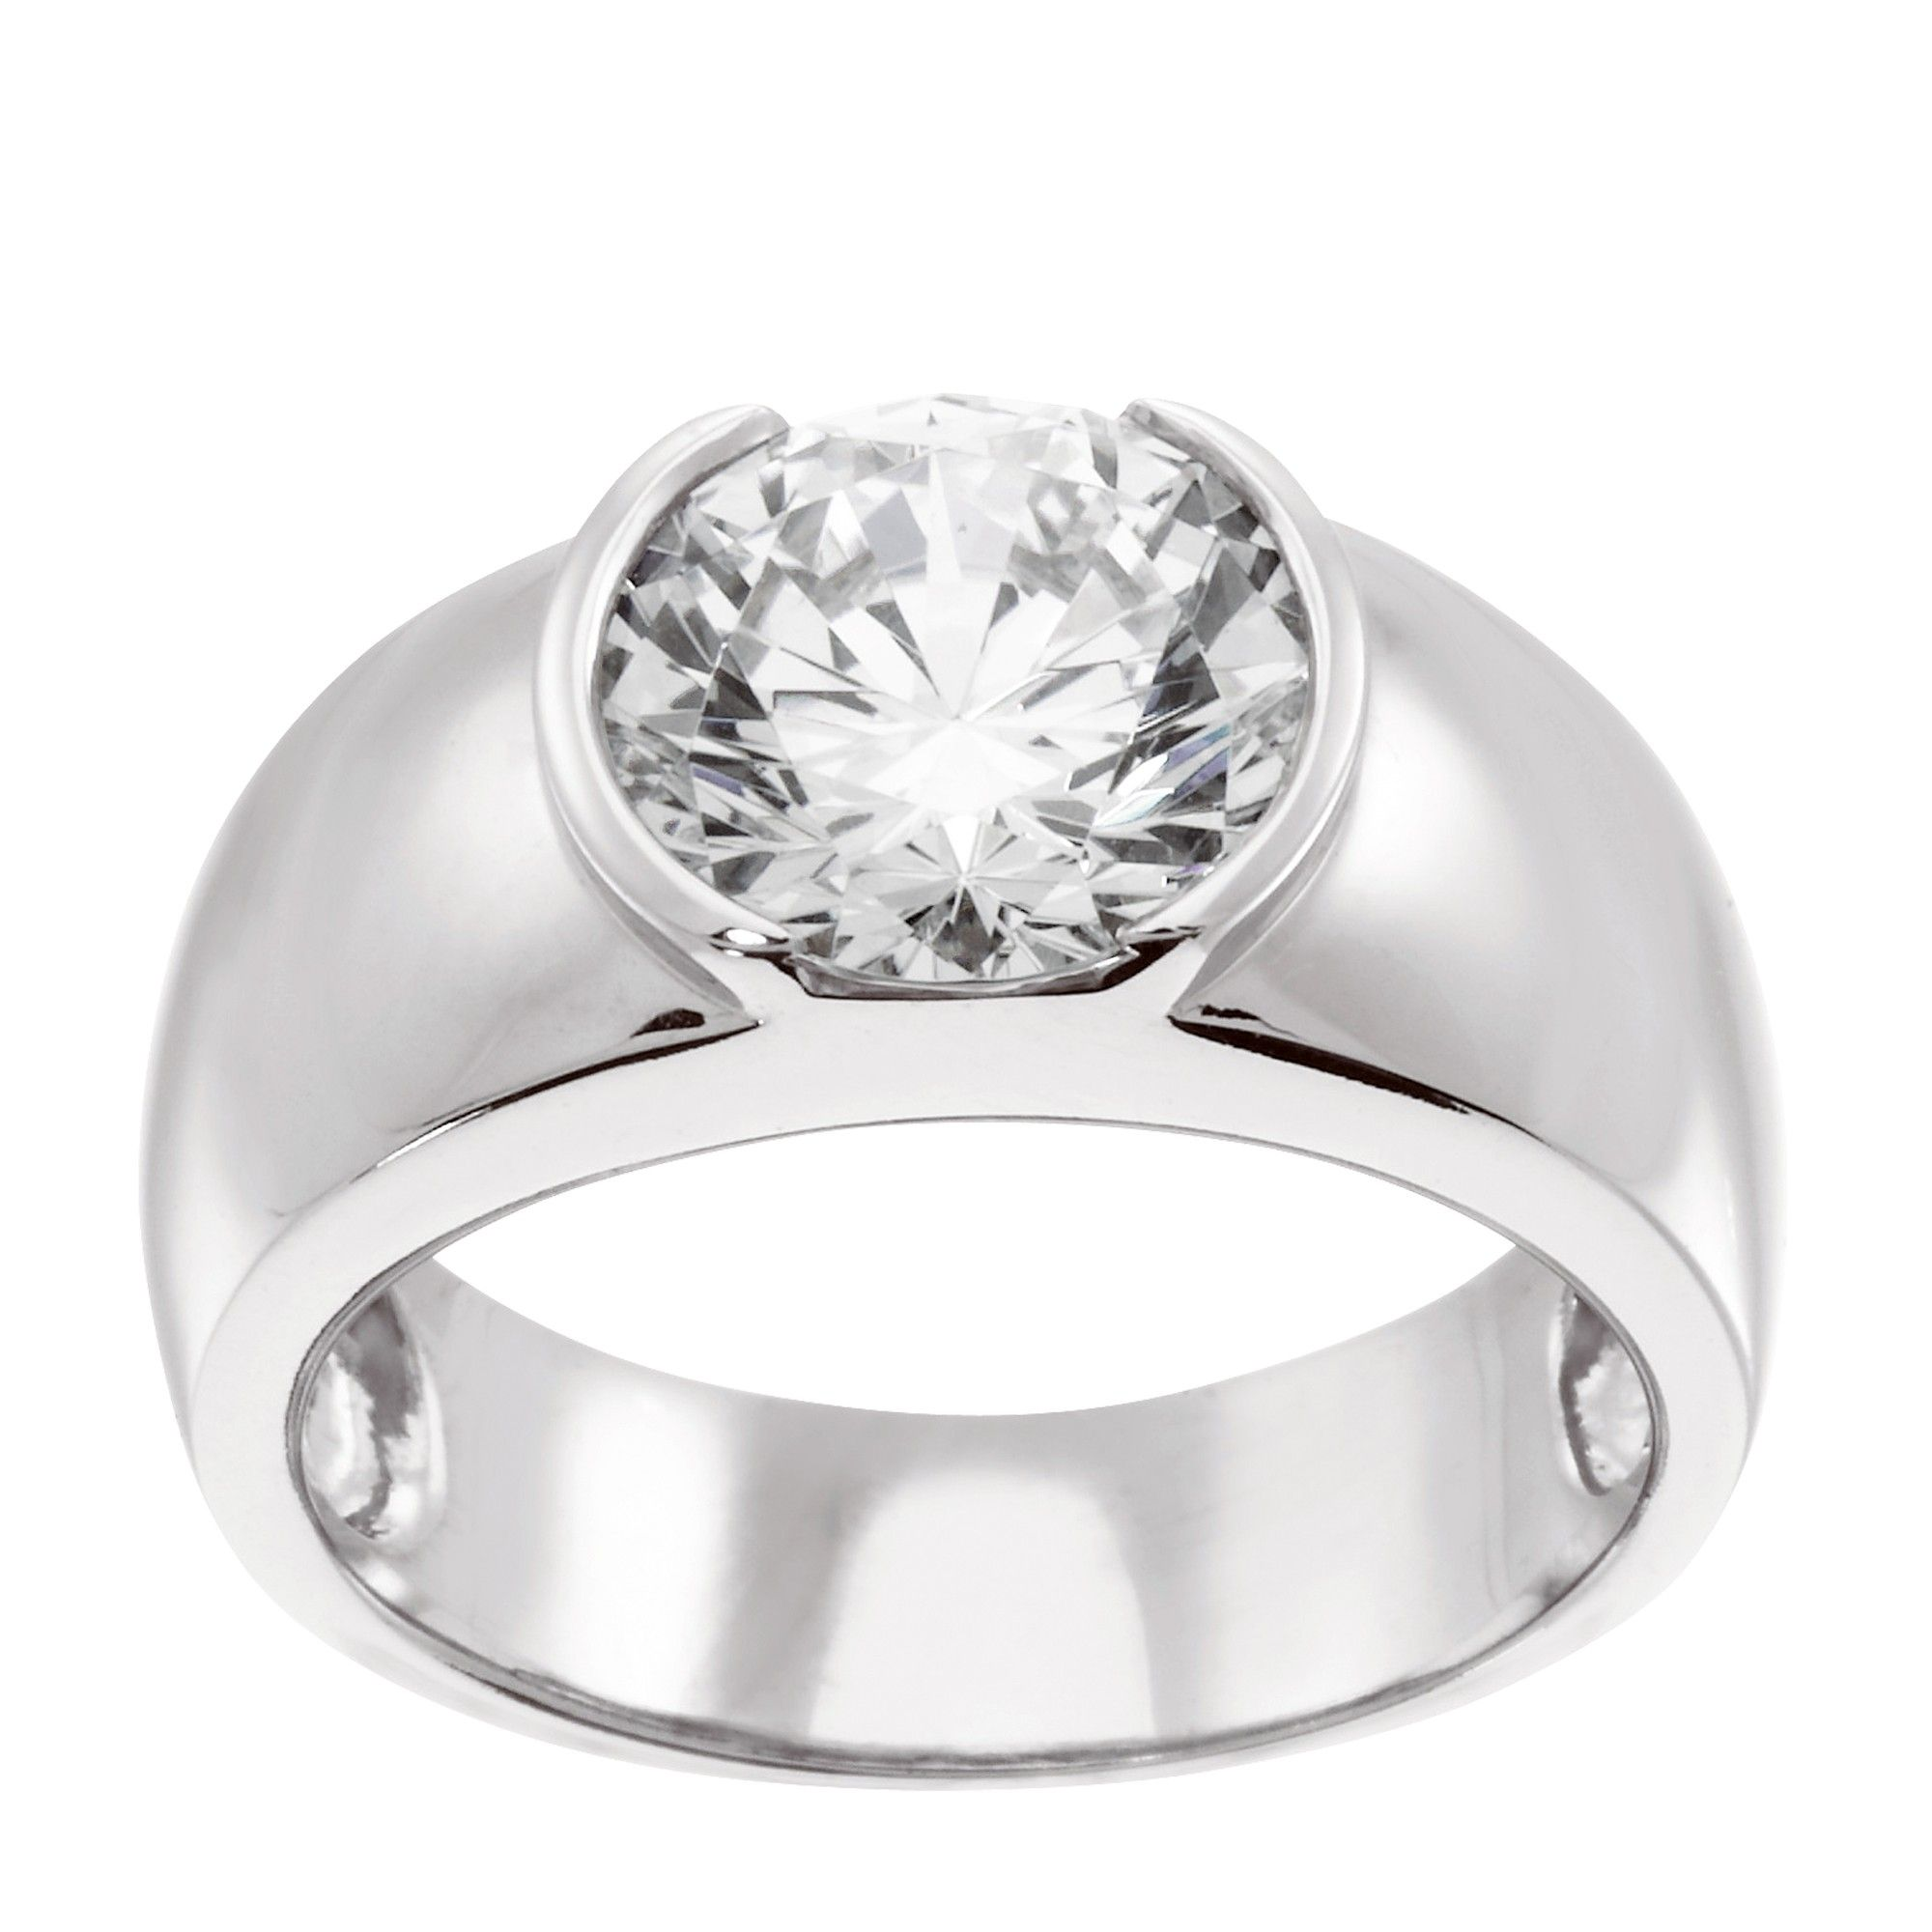 files for settings and non without best engagement ideas wedding rings ring diamond affordable trend